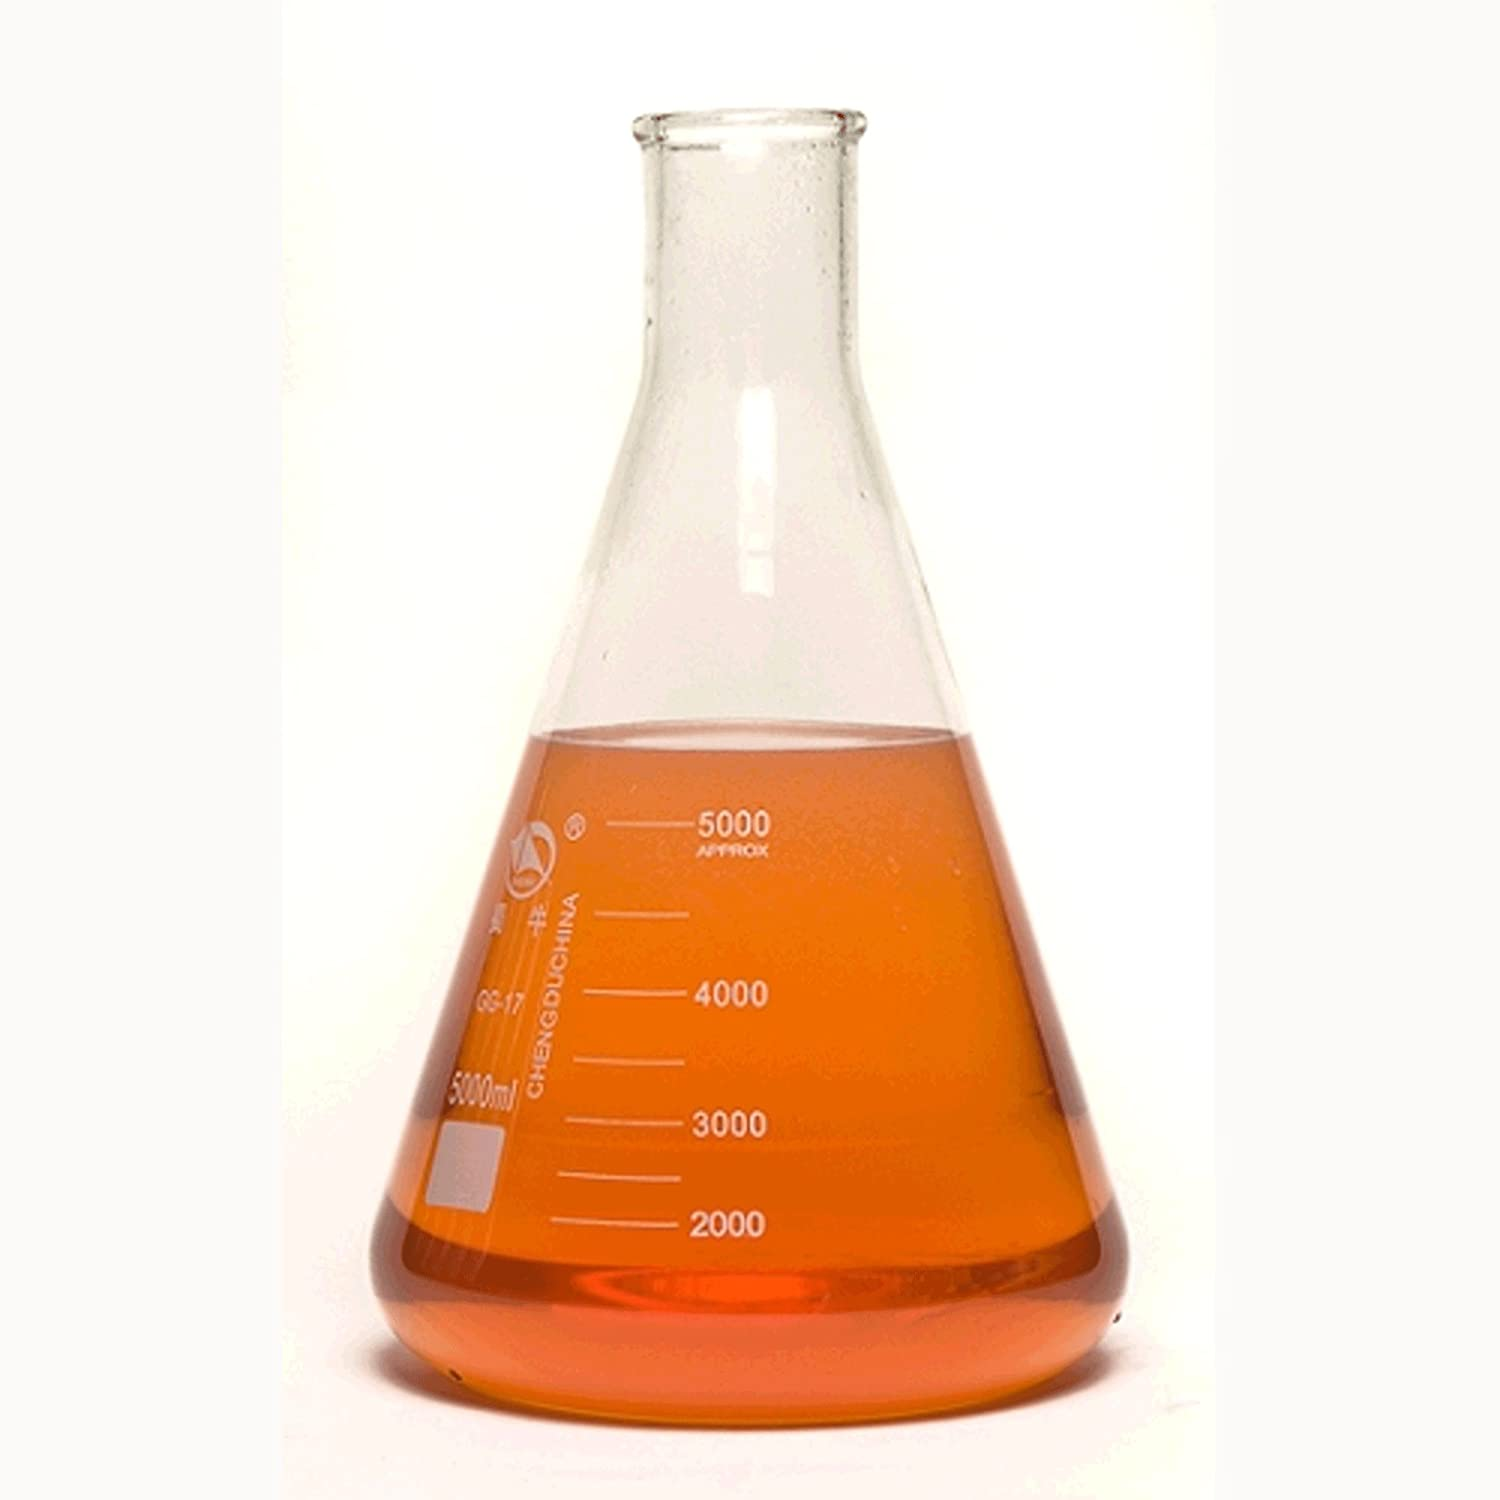 United Scientific FG4980-5000 Borosilicate Glass Narrow Mouth Erlenmeyer Flask, 5000ml Capacity United Scientific Supplies